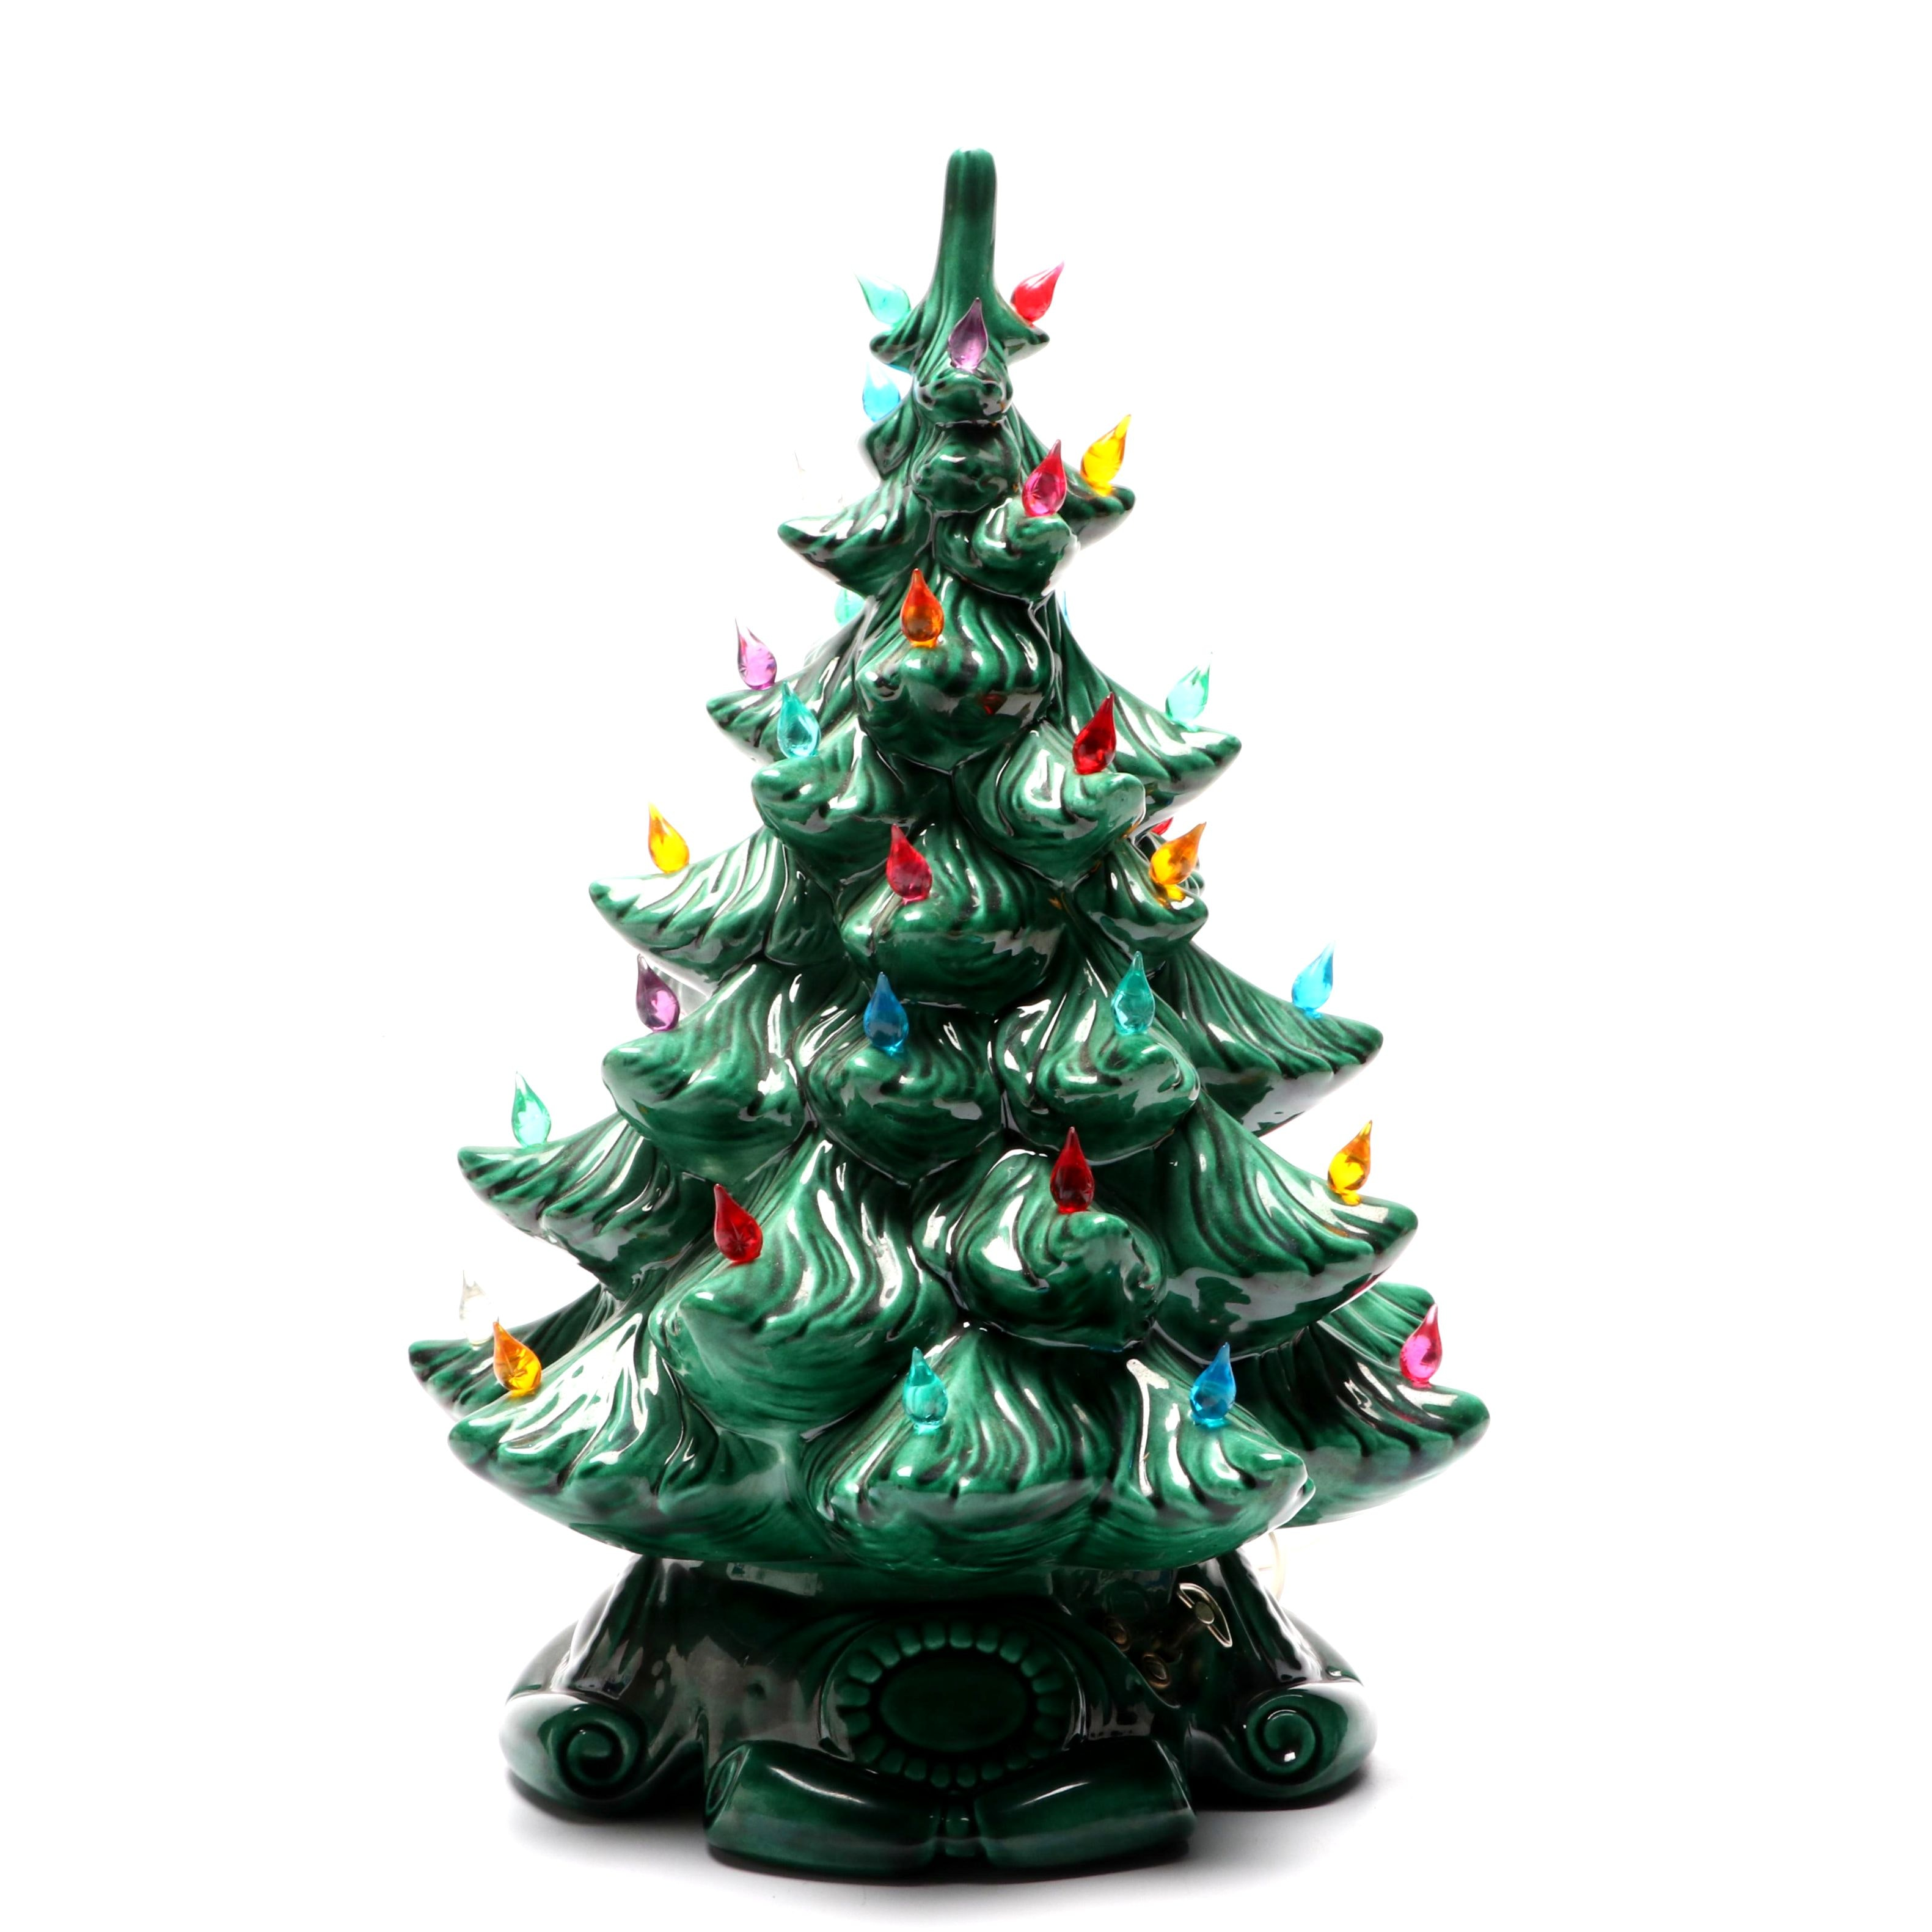 Ceramic Light Up Musical Christmas Tree Table Top Decoration